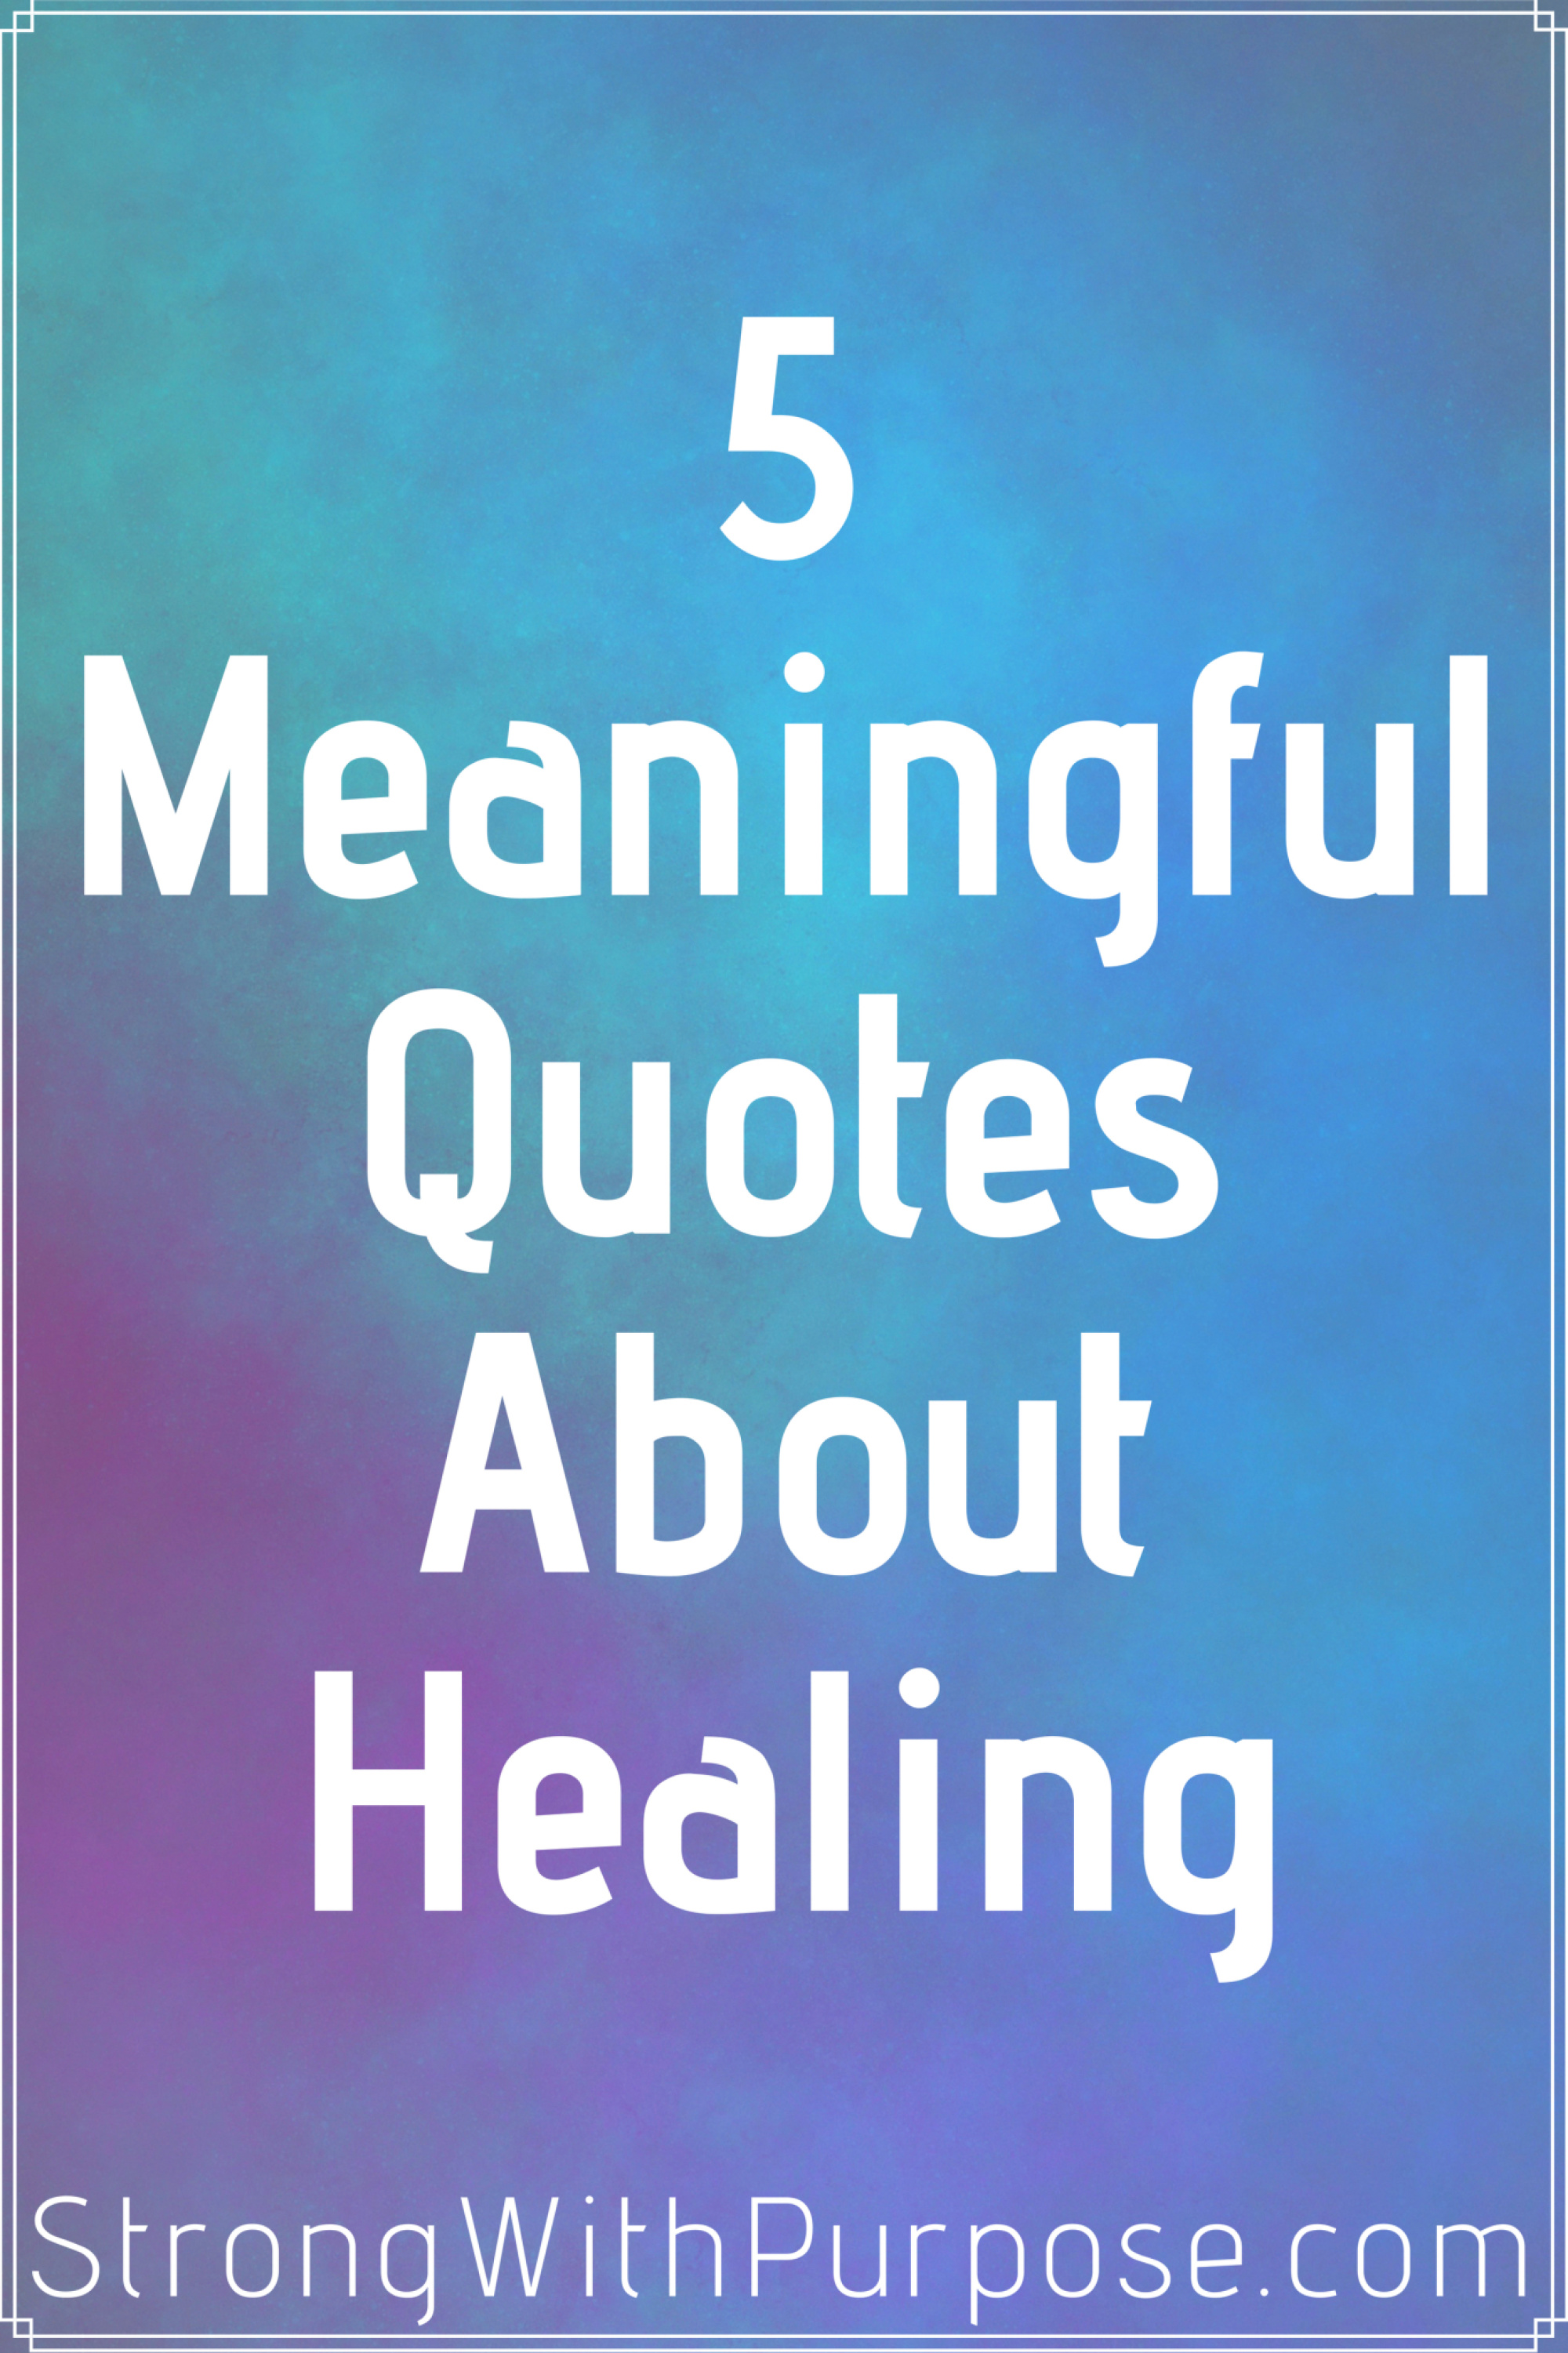 Healing Quotes   5 Meaningful Quotes About Healing Strong With Purpose